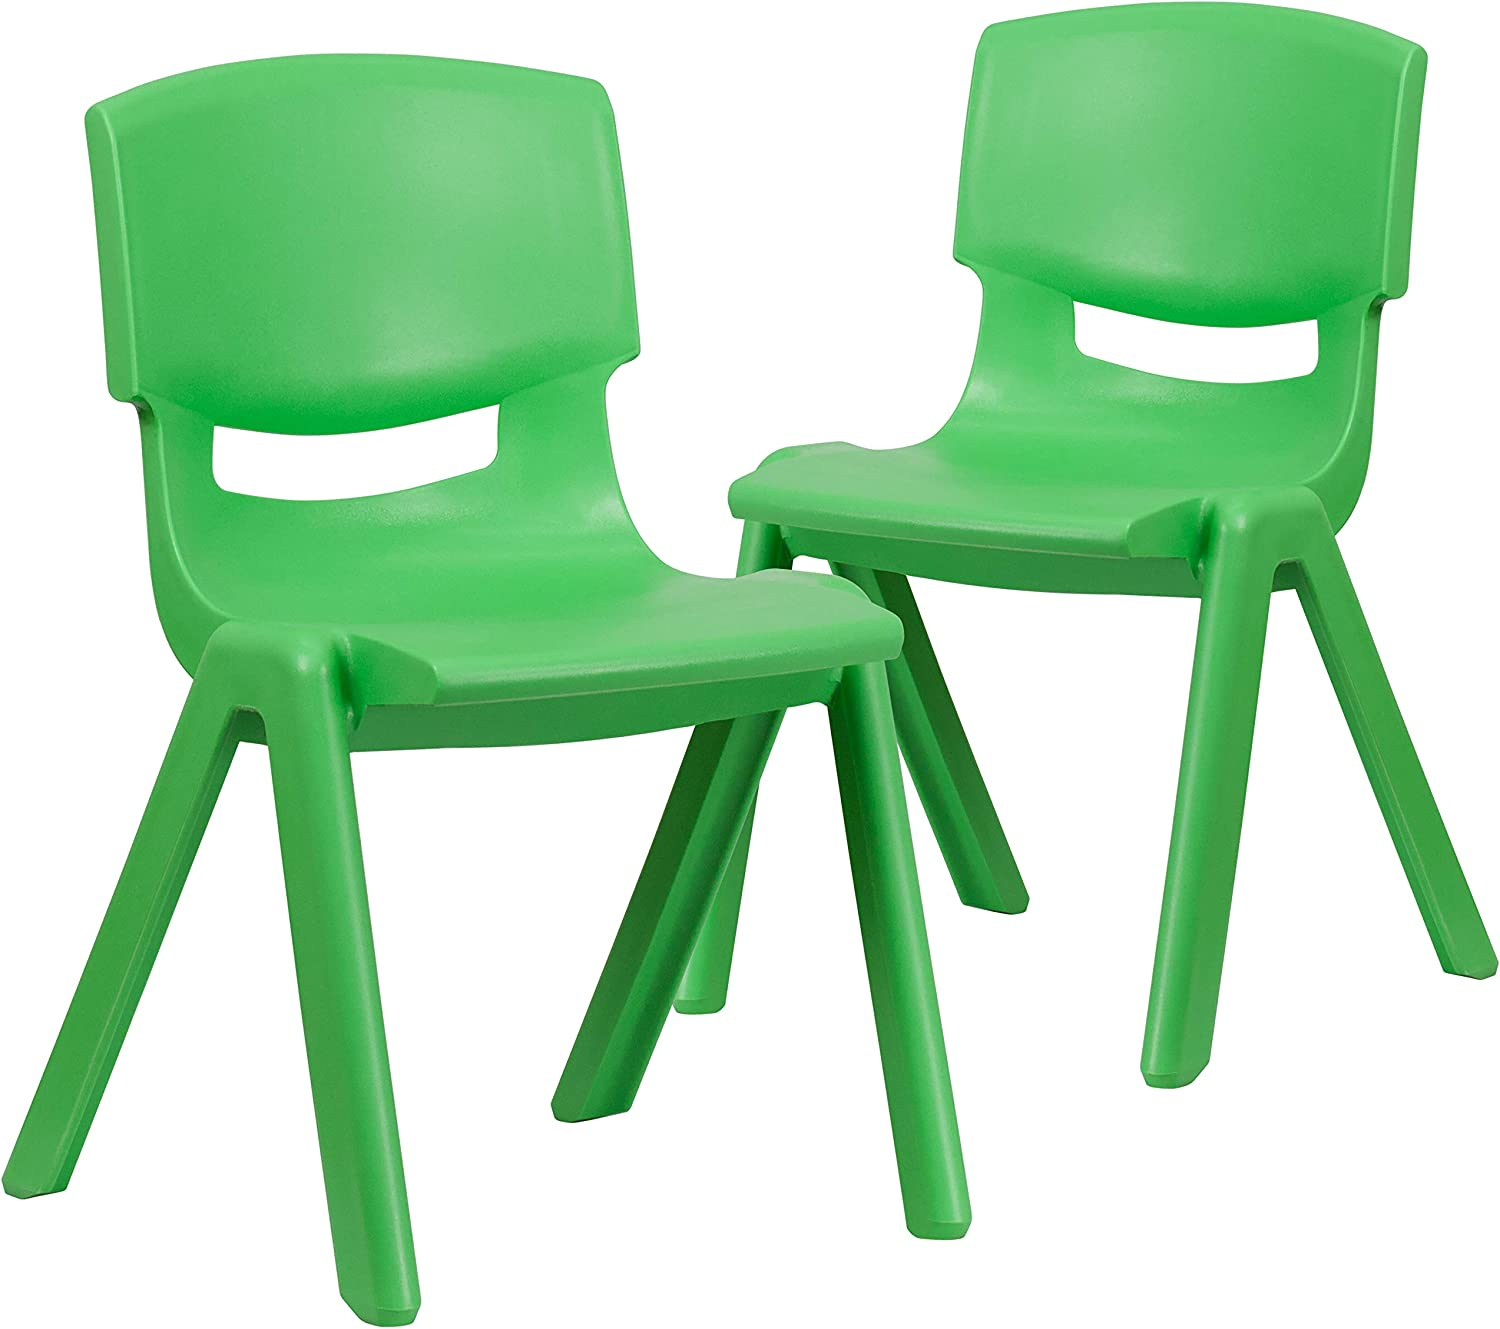 """Flash Furniture 2 Pack Green Plastic Stackable School Chair with 15.5"""" Seat Height"""